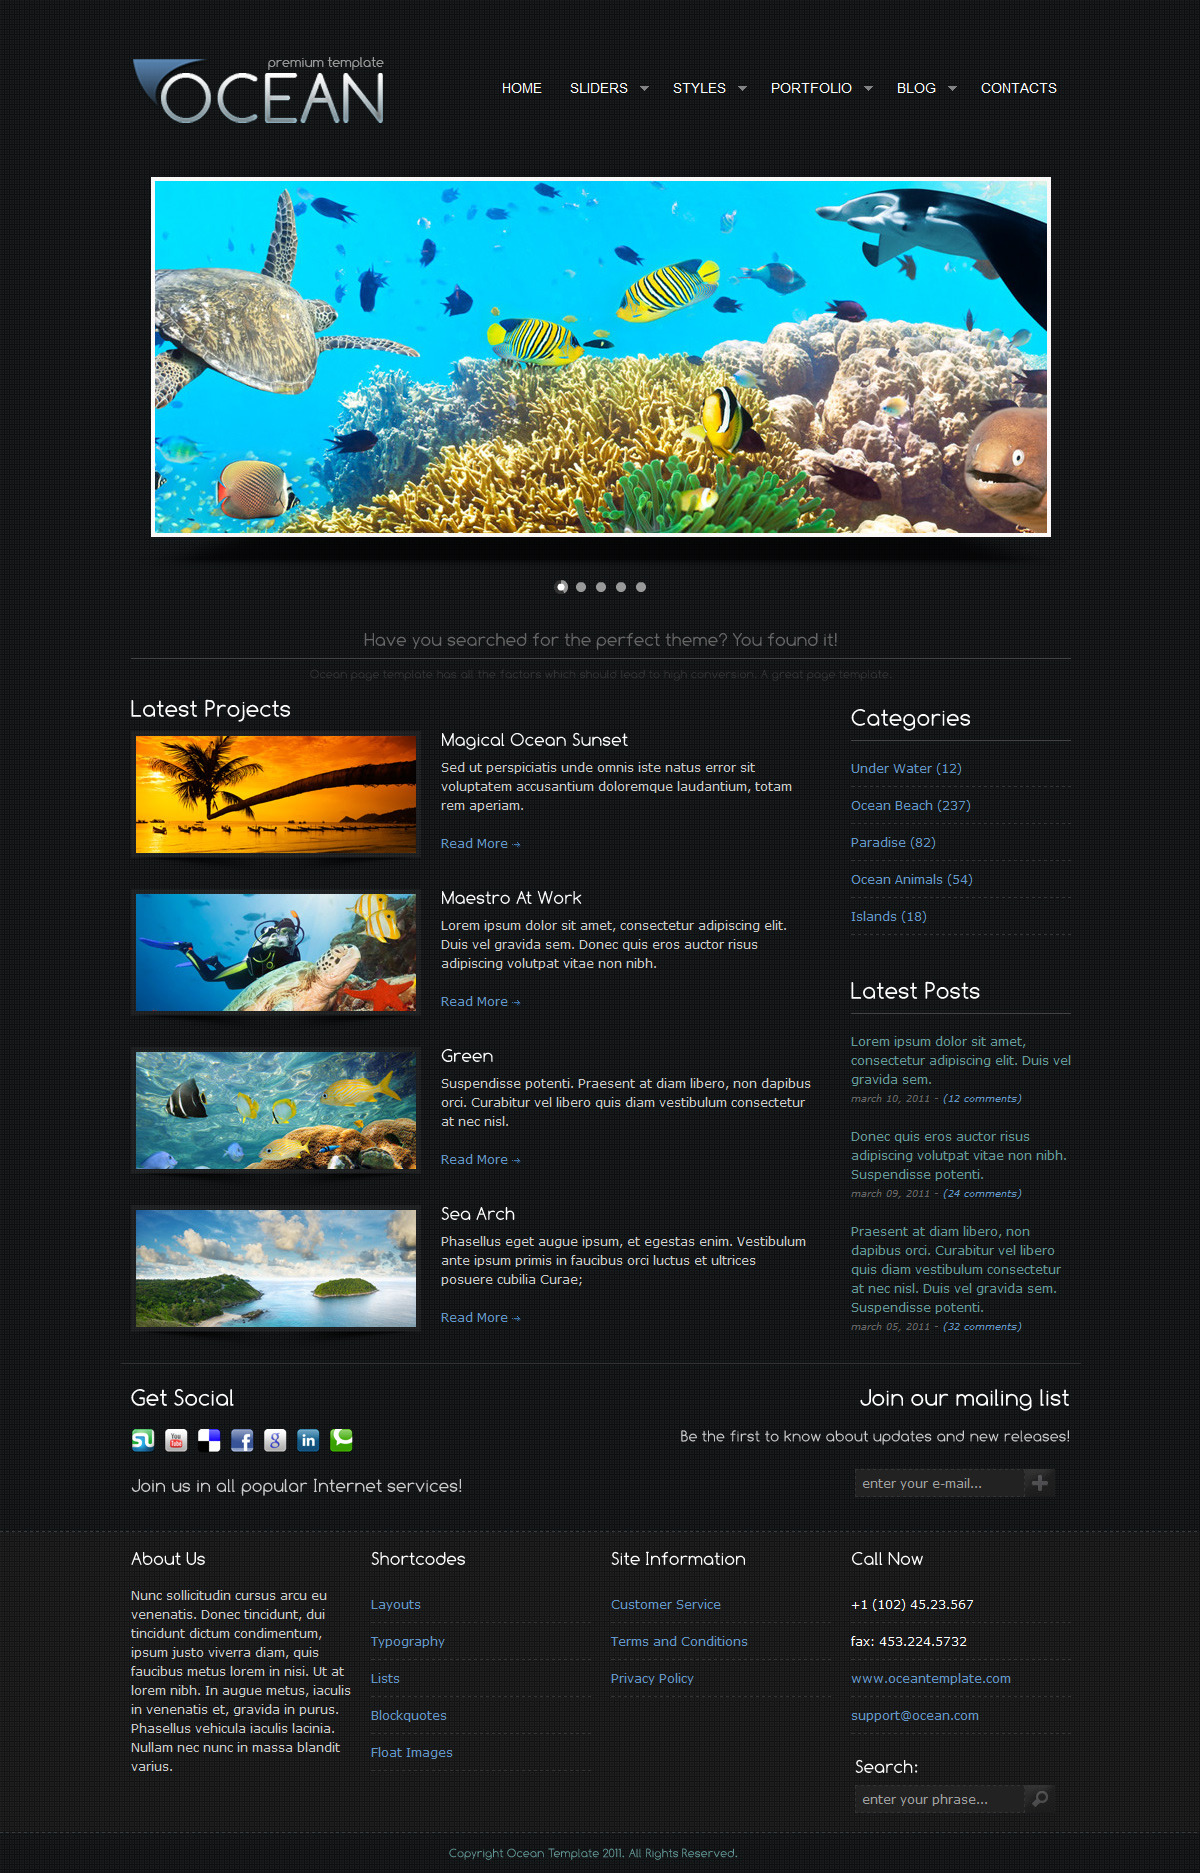 Ocean Premium Template - Home page design